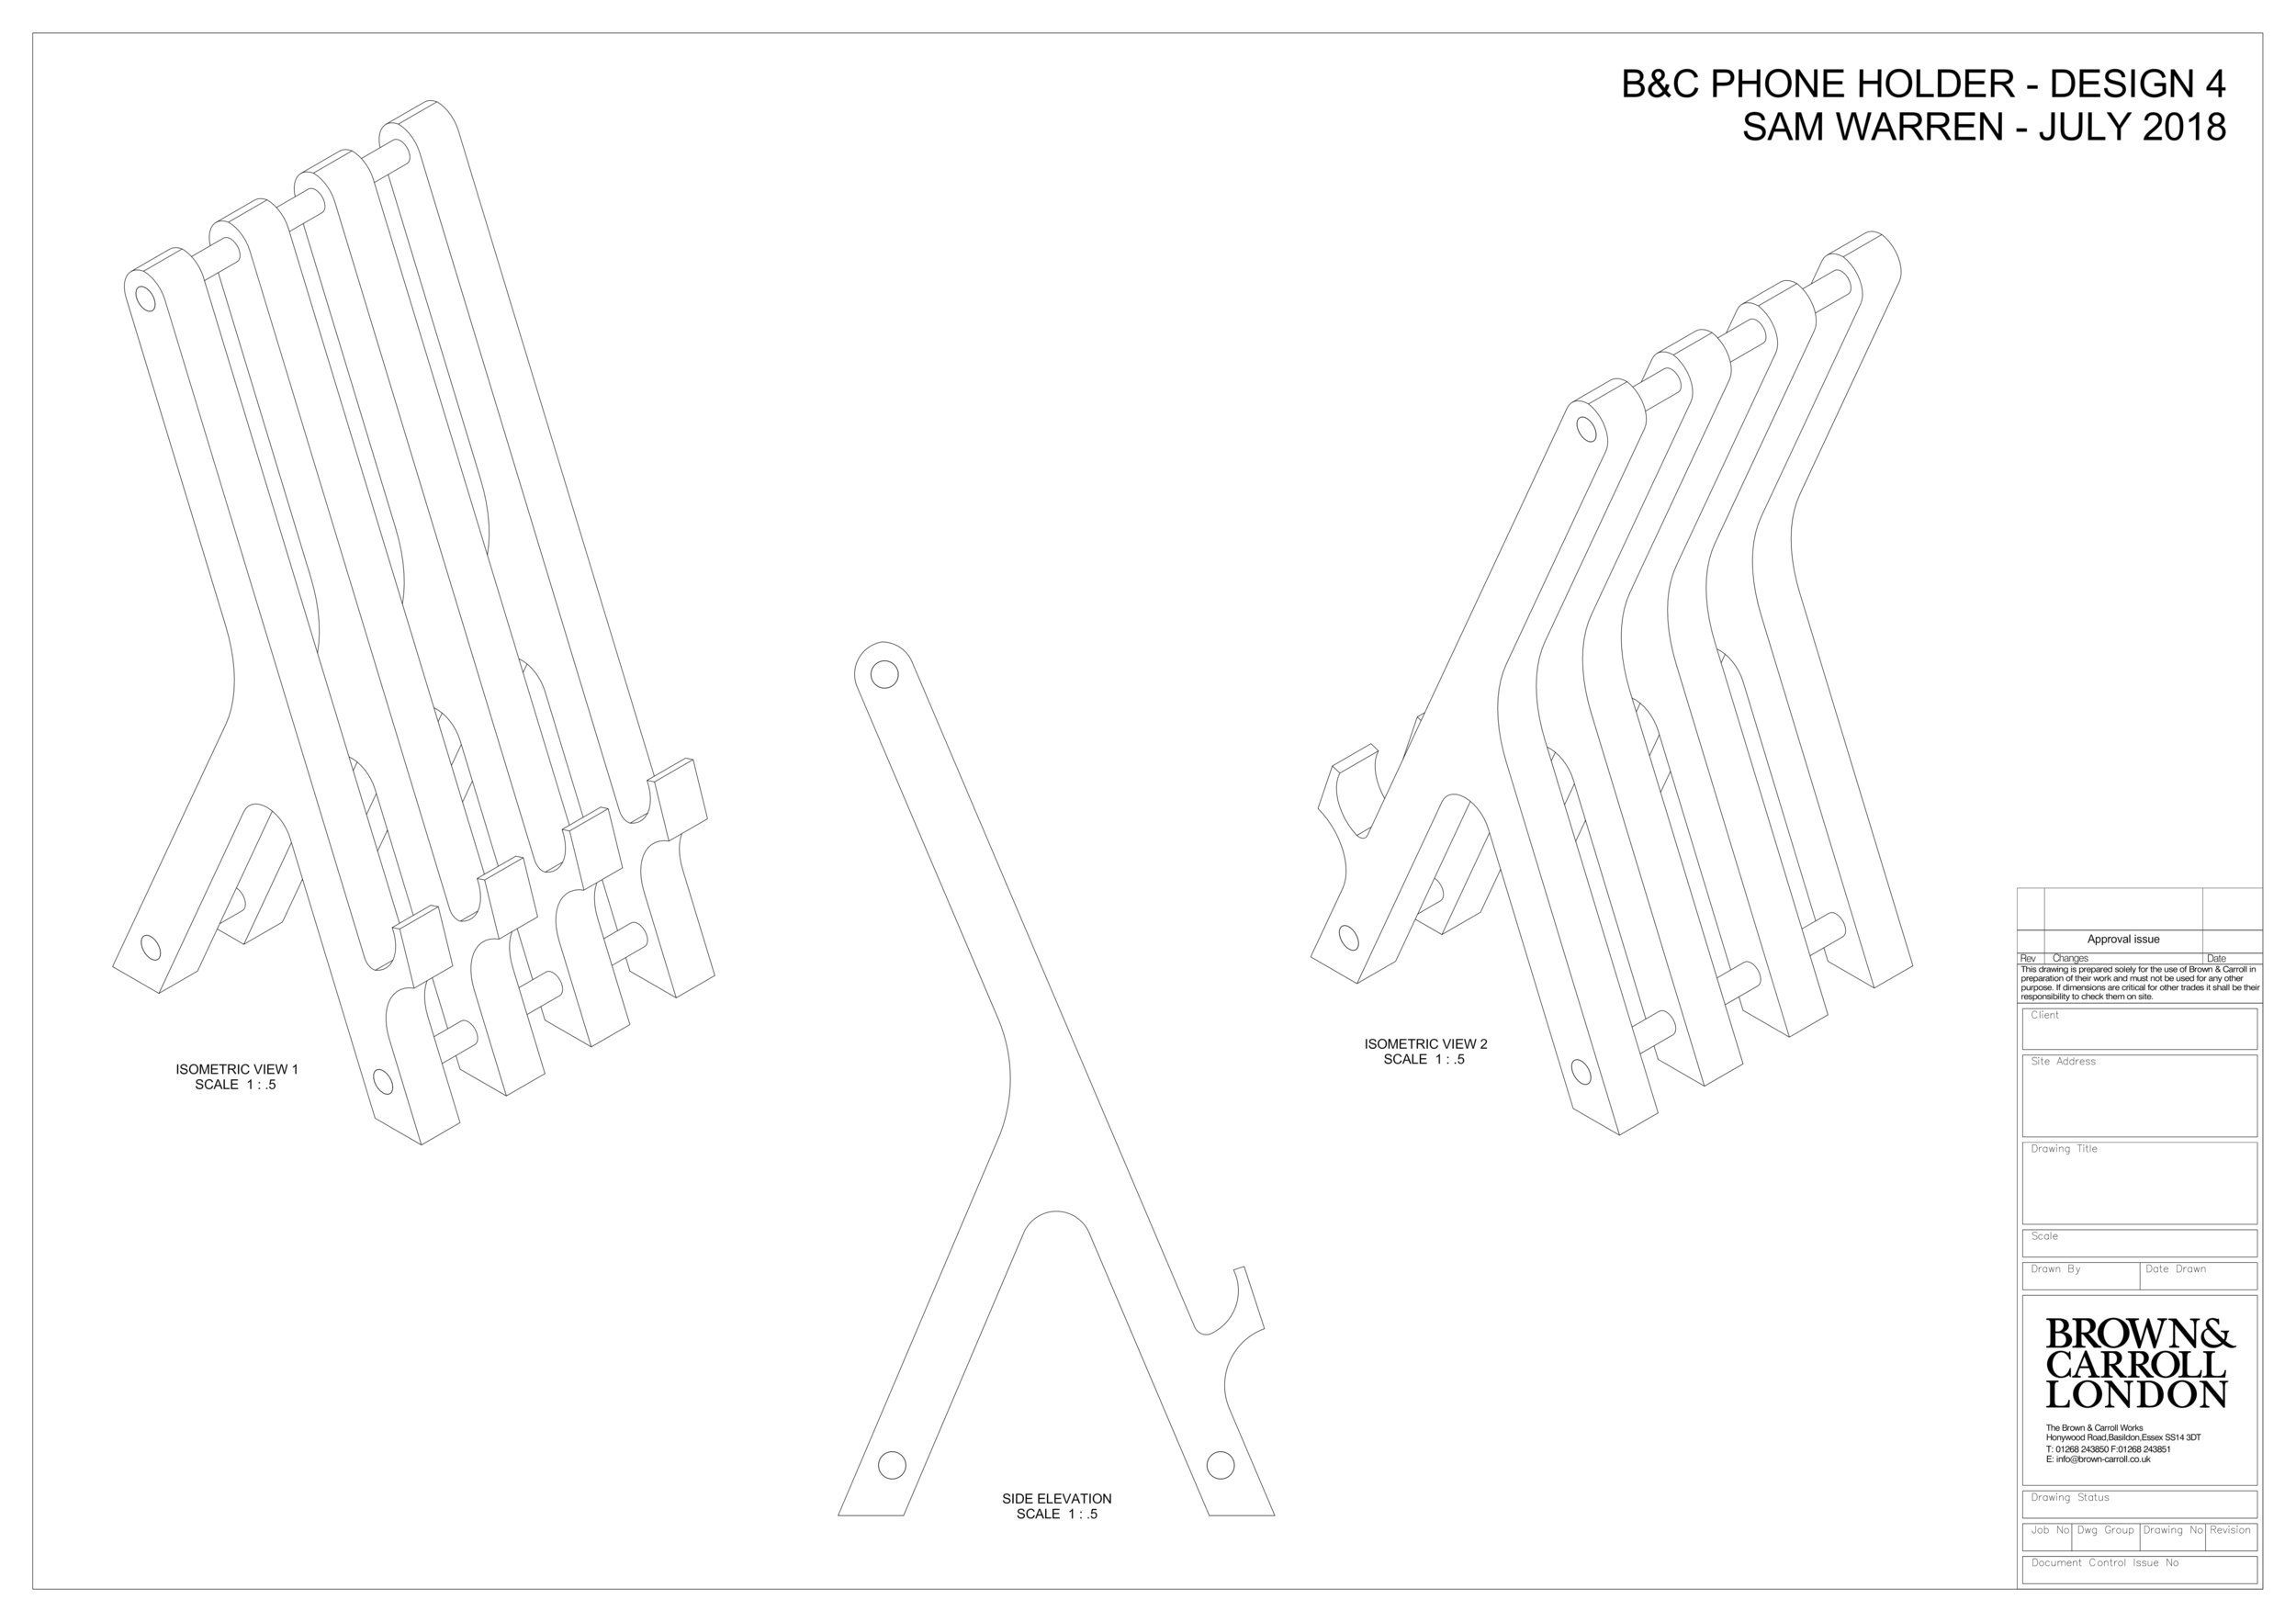 phone holder 4 - assembly-1.png